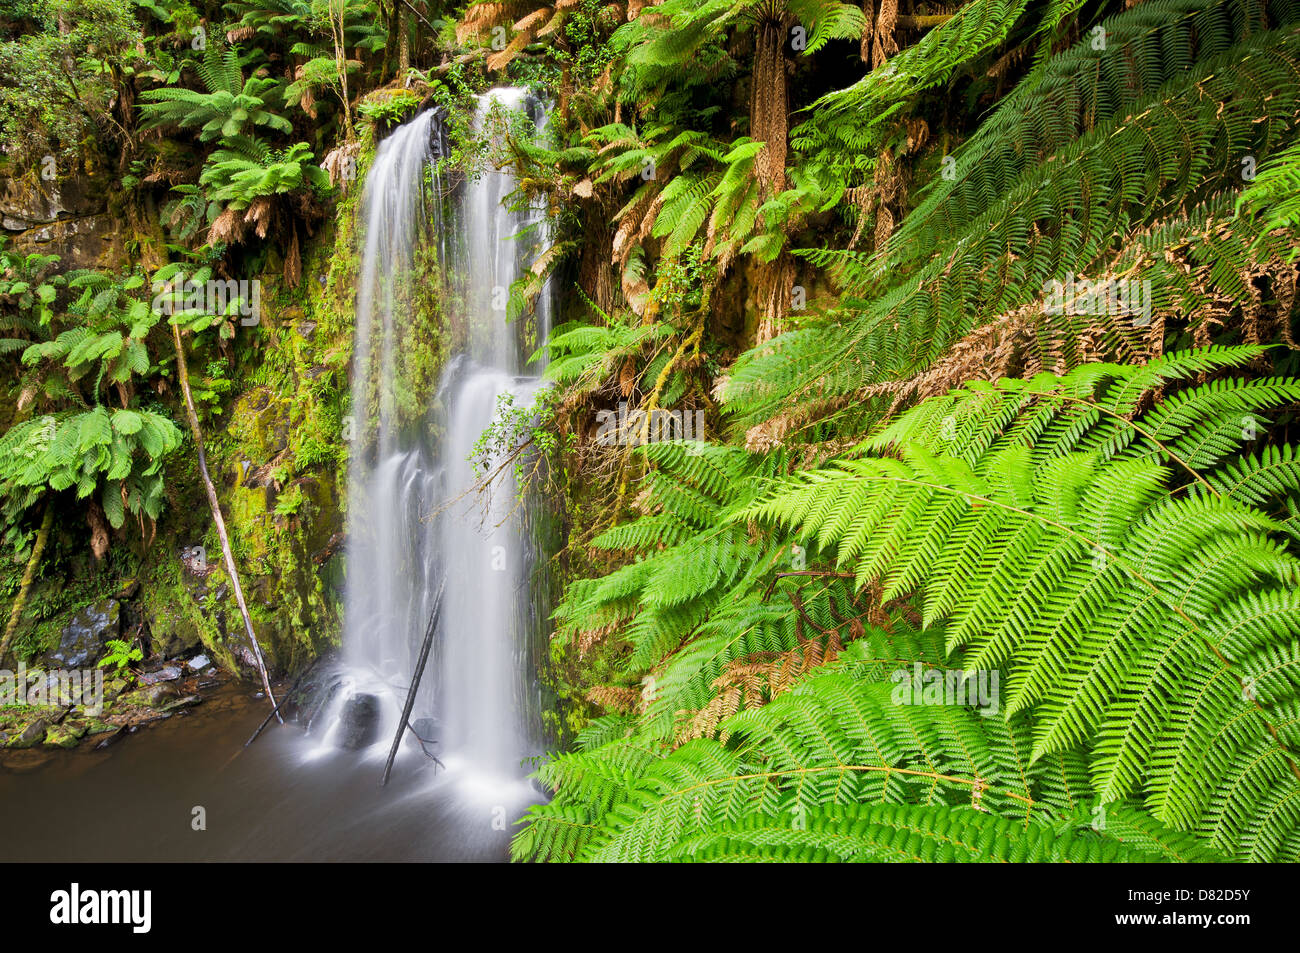 Beauchamp Falls in Great Otway National Park. - Stock Image